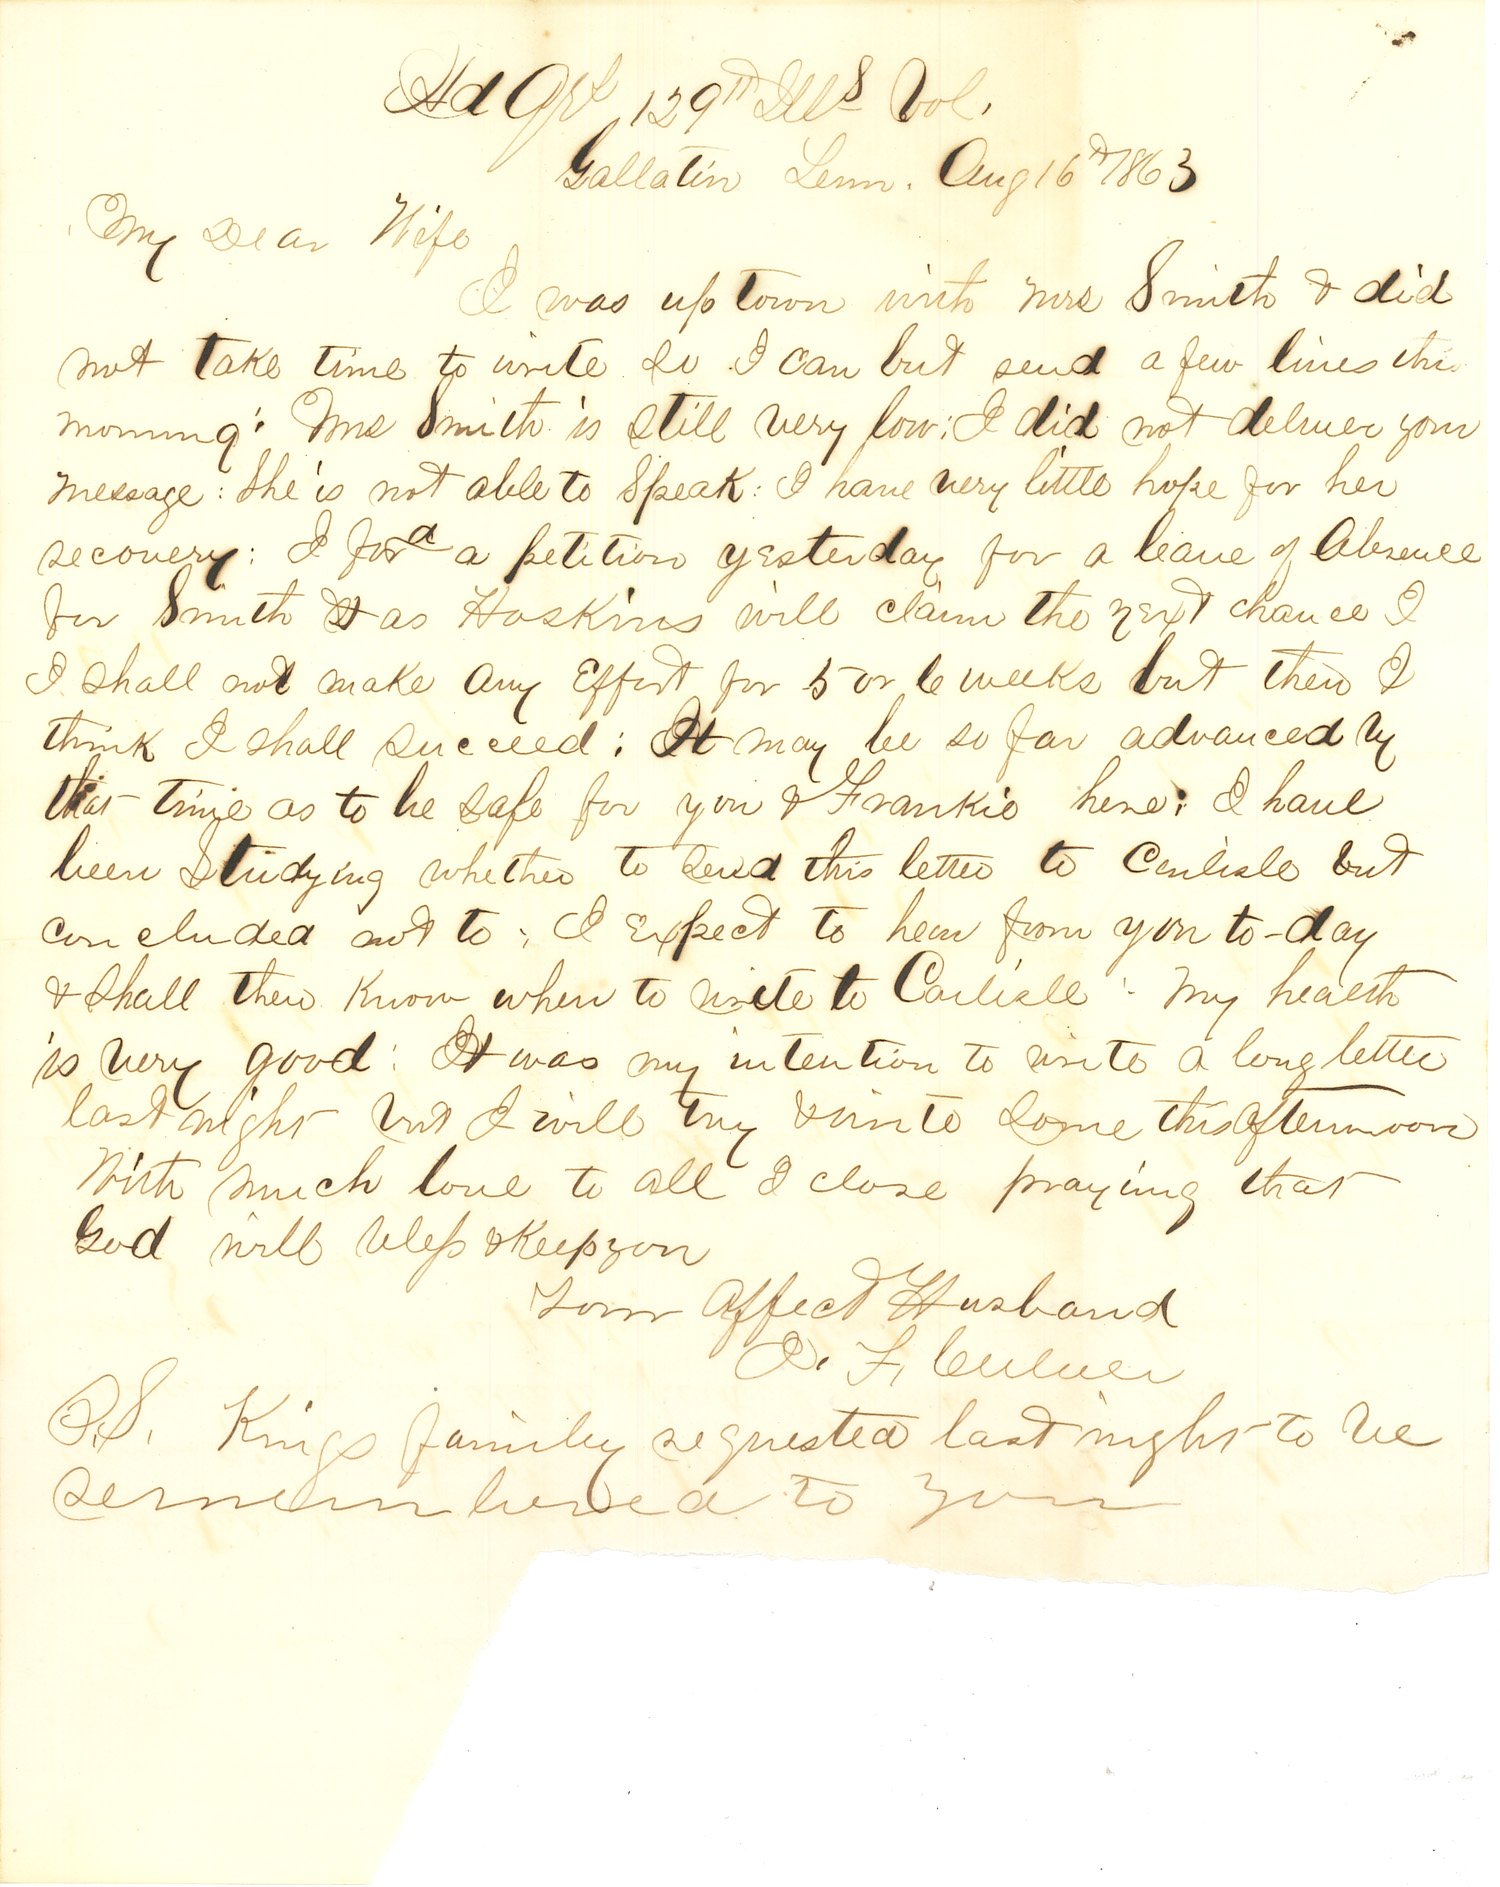 Joseph Culver Letter, August 16, 1863, Page 1